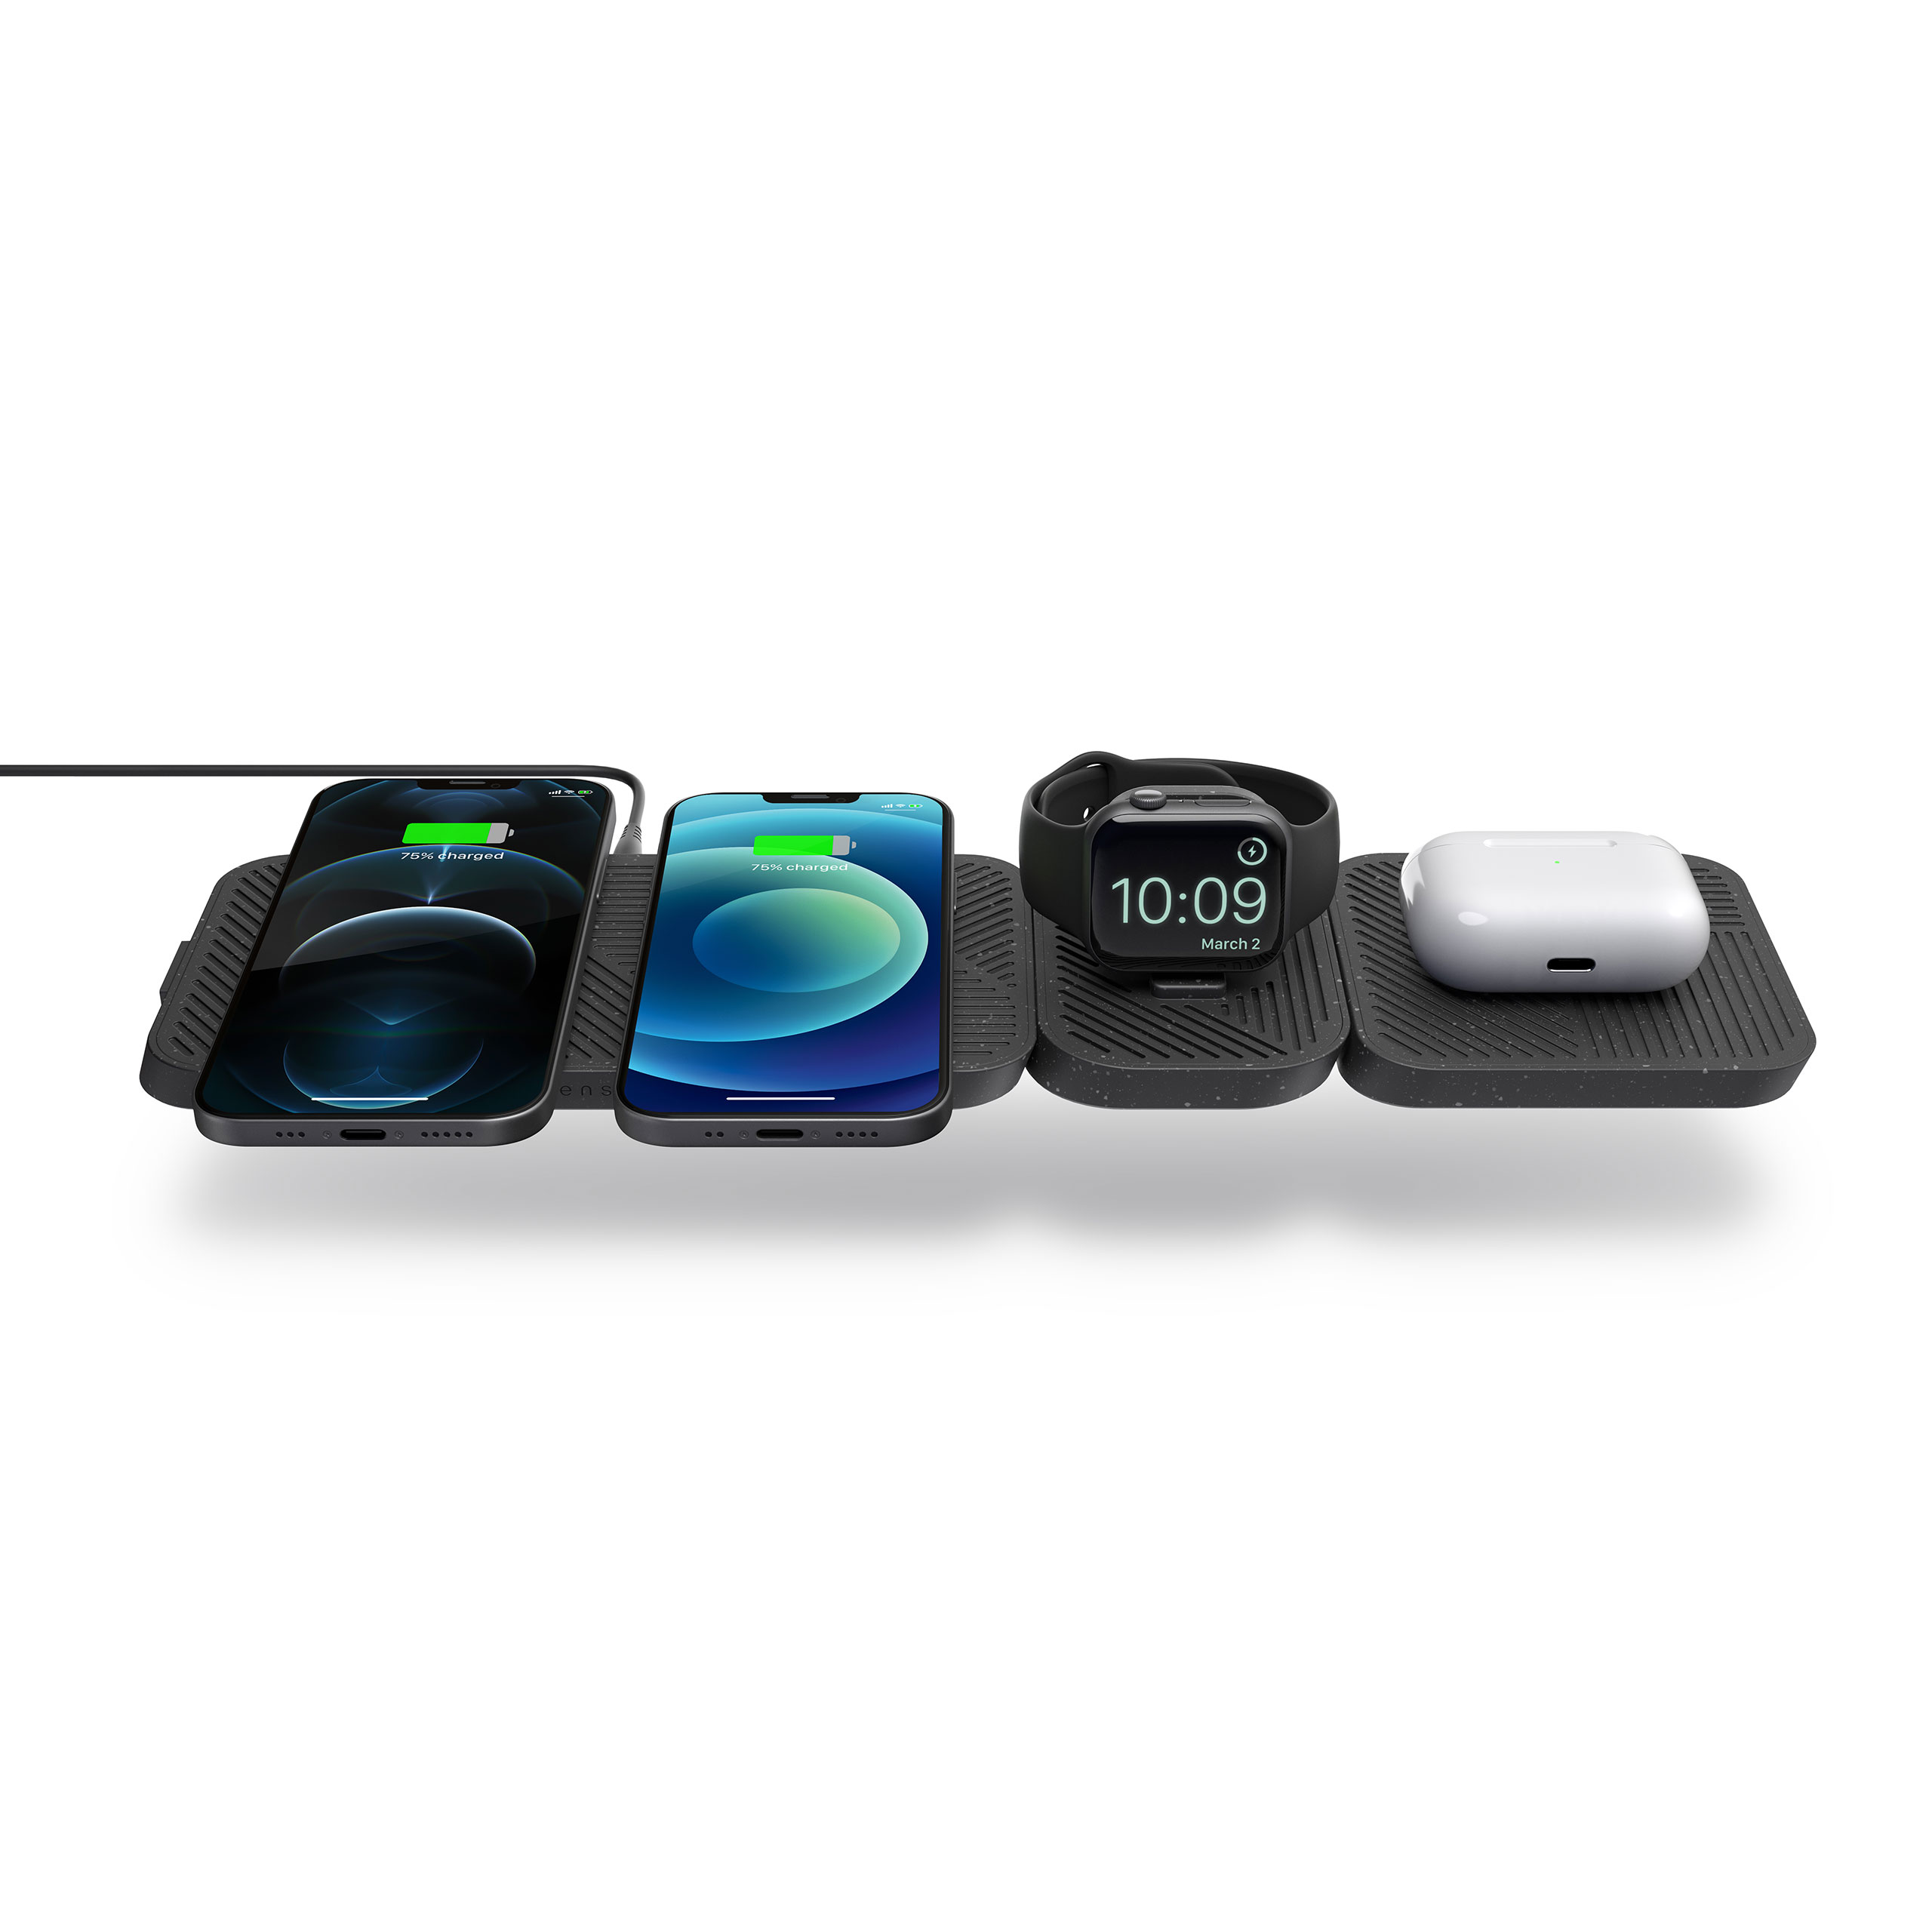 ZEMDC1P - Zens Modular Dual Wireless Charger With Extensions And Devices